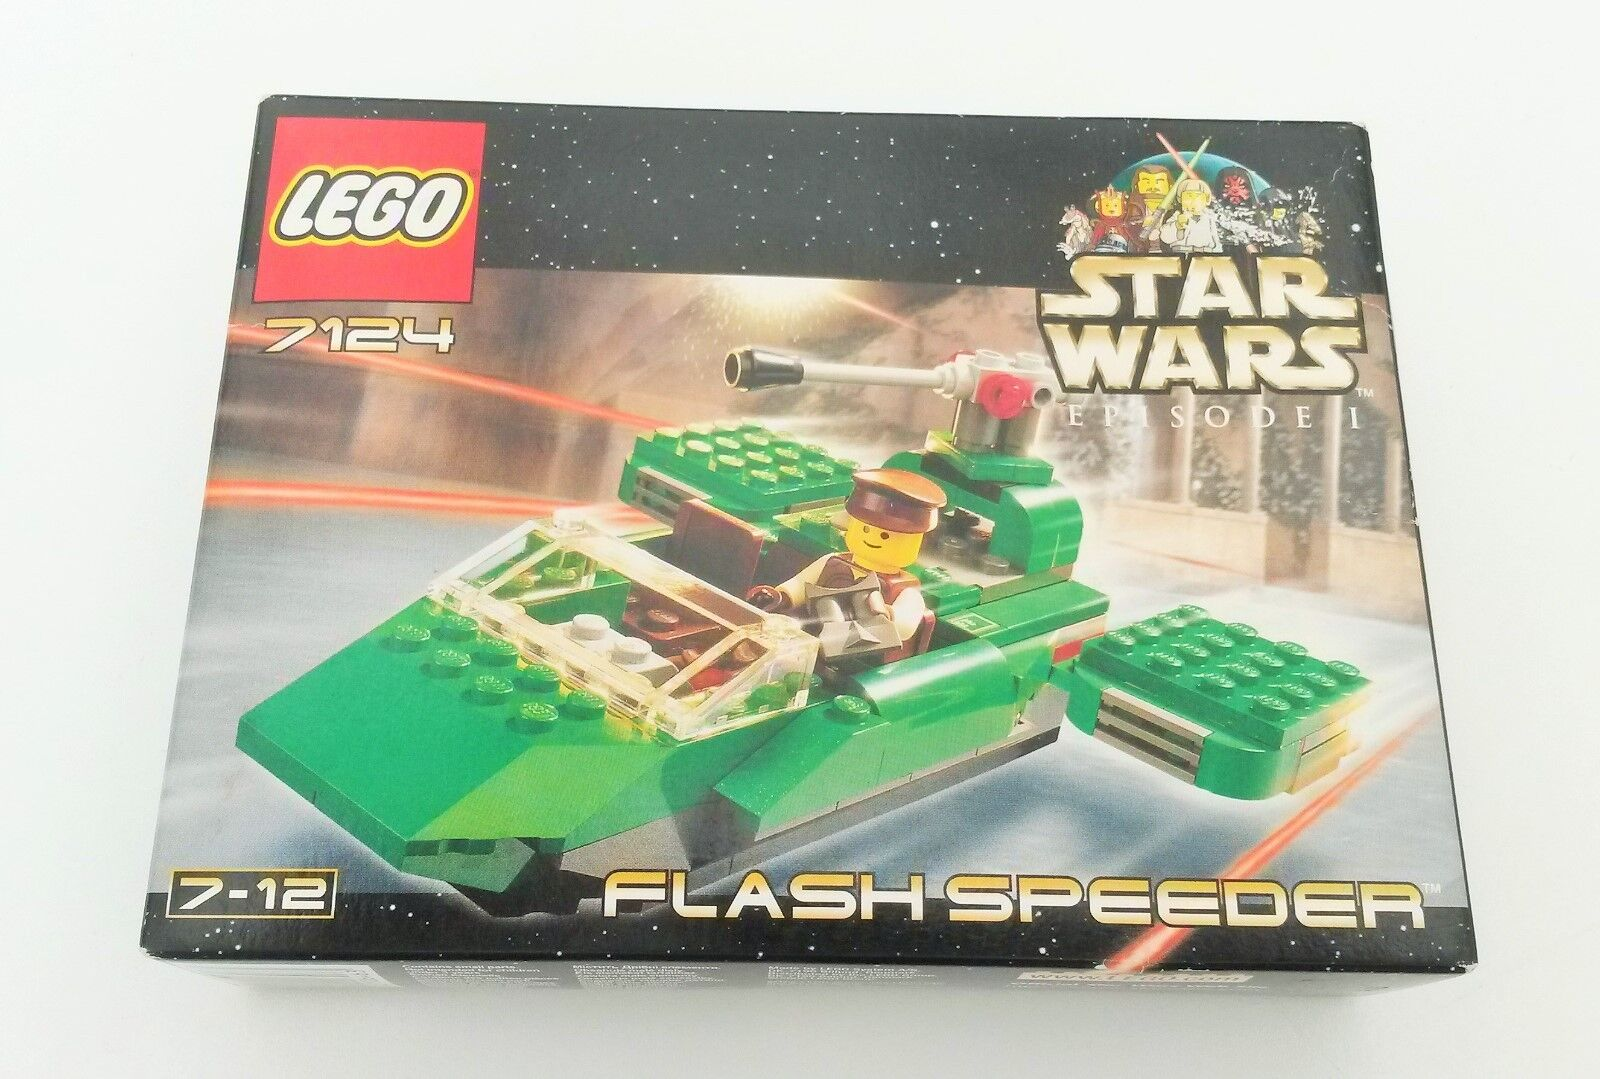 Vintage Lego Star wars, Naboo Flash Speeder, 7124, New and Sealed,